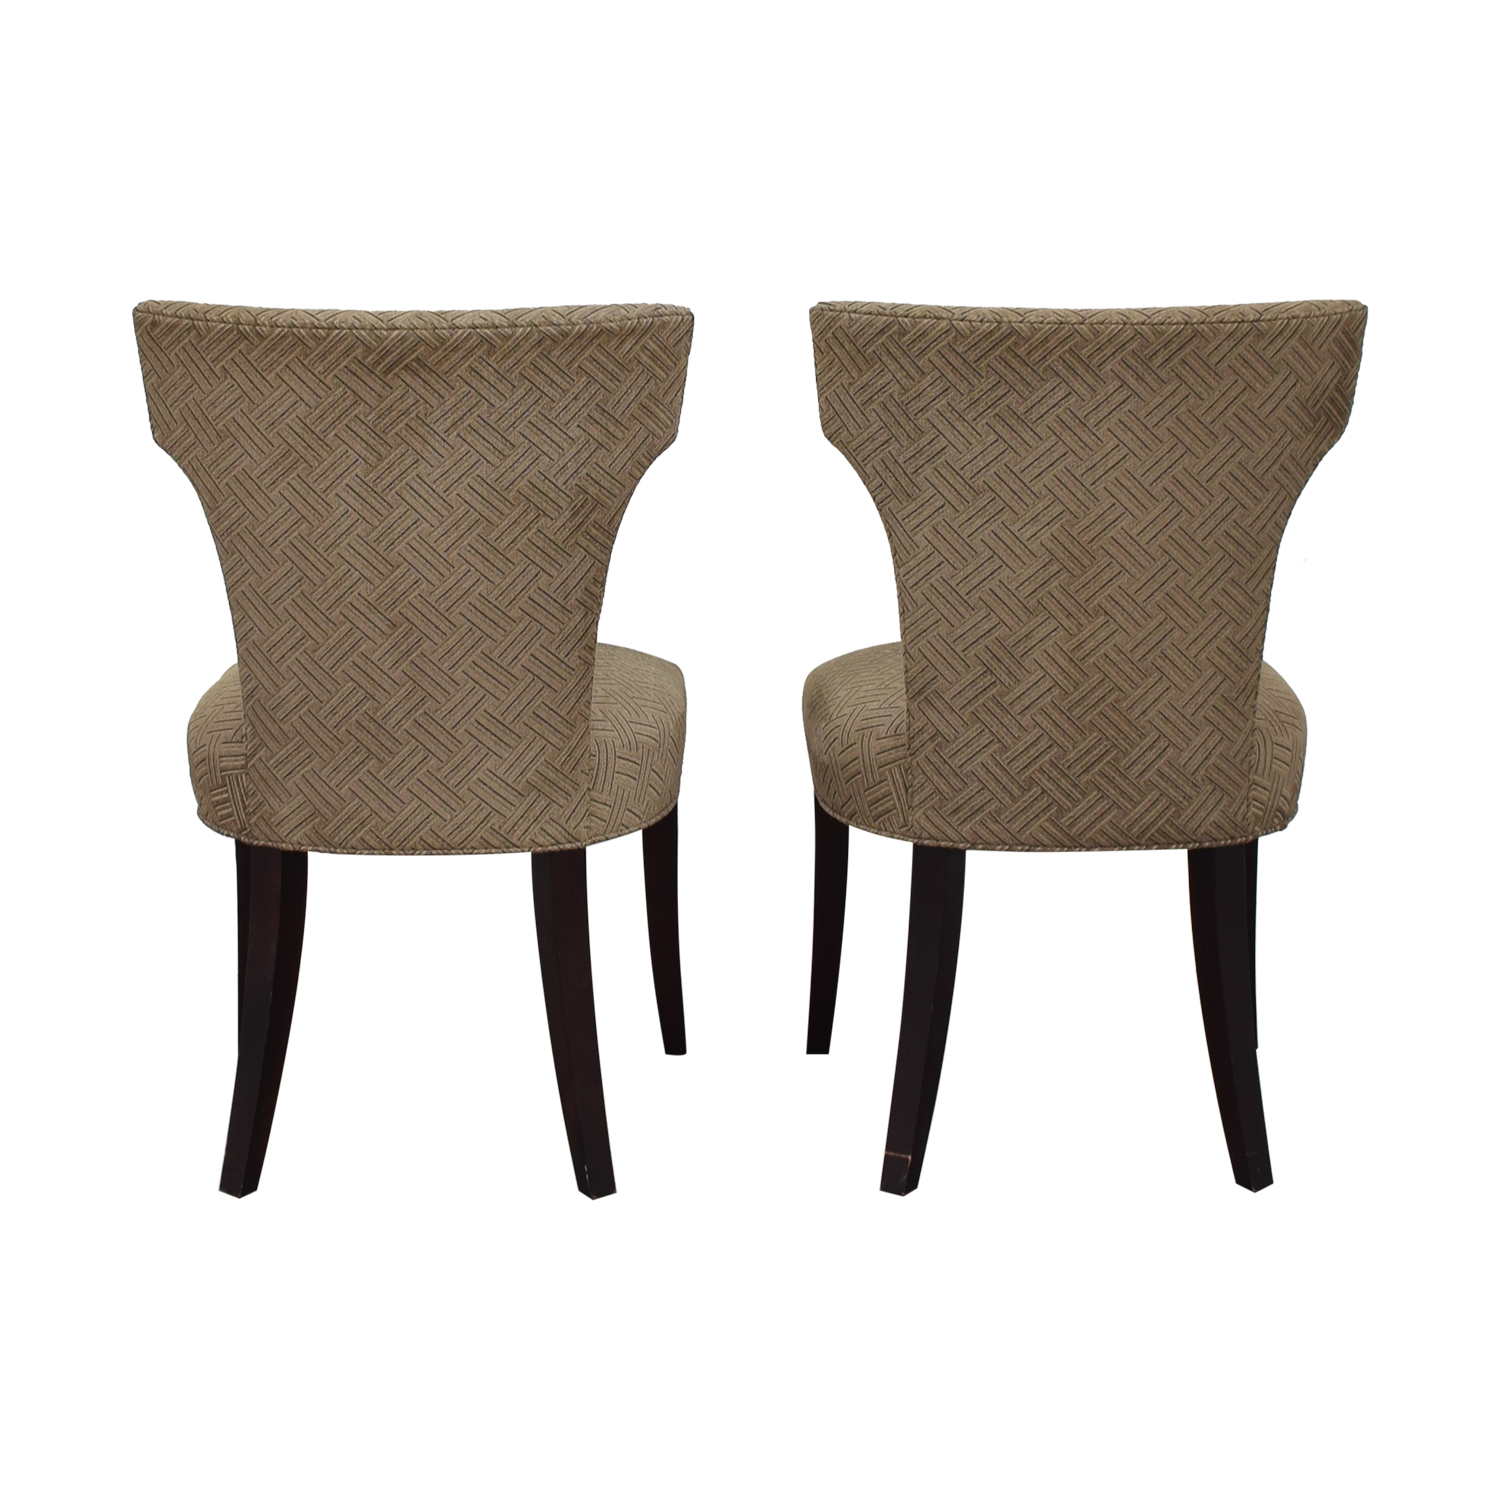 separation shoes c6046 798c6 83% OFF - Crate & Barrel Crate & Barrel Sasha Upholstered Dining Chairs /  Chairs